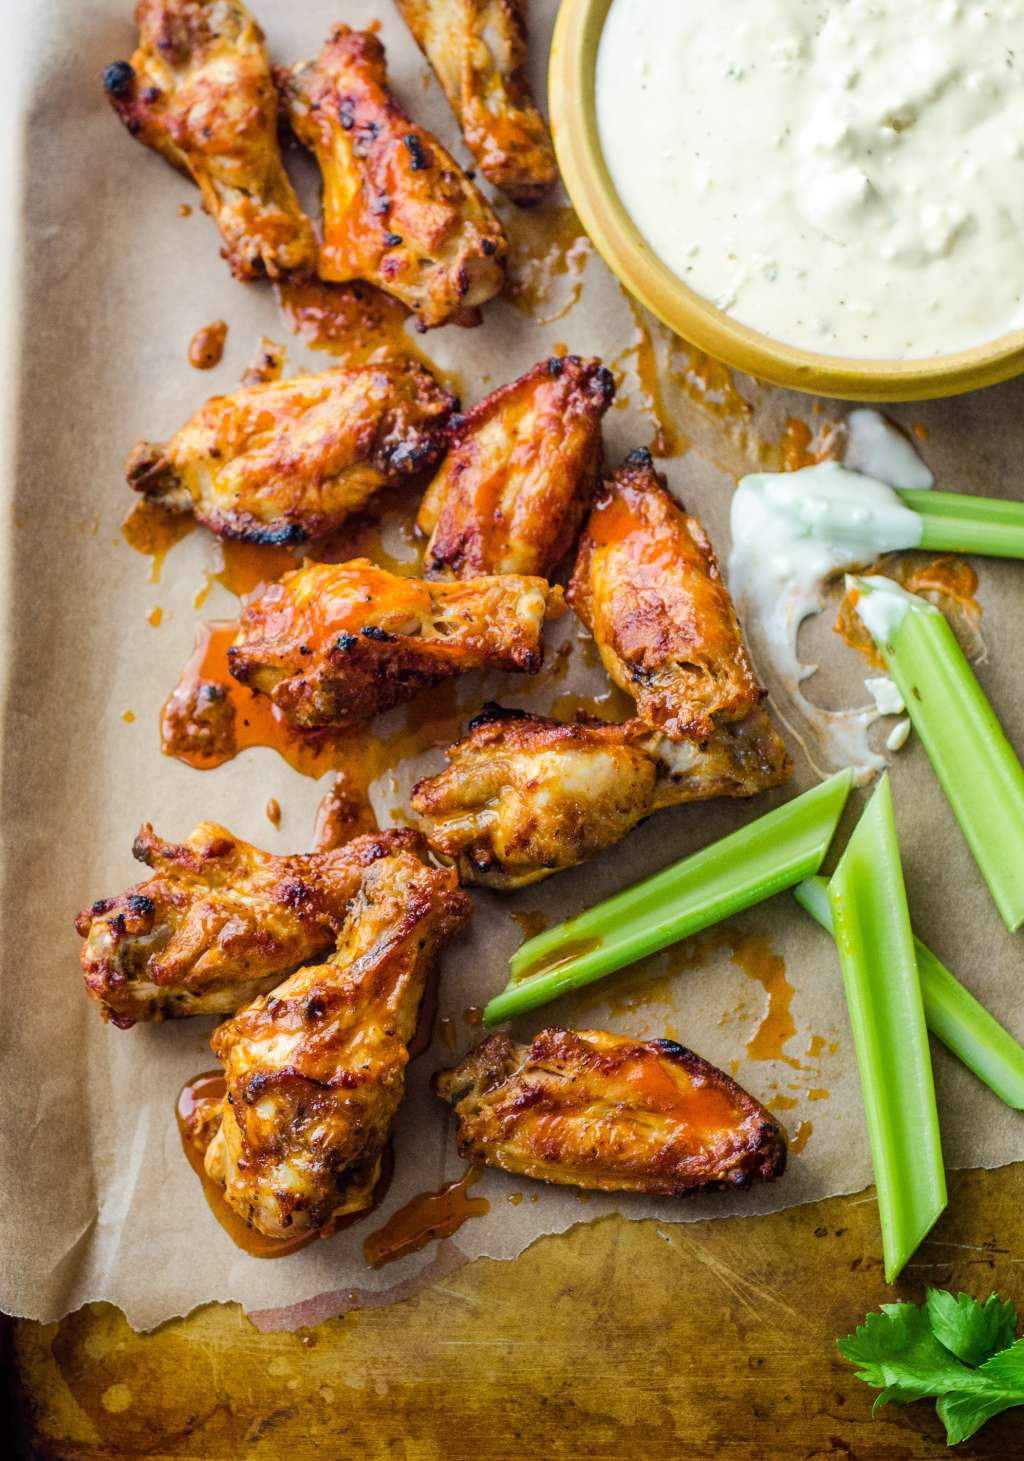 How To Make Buffalo Chicken Wings in the Oven | Kitchn